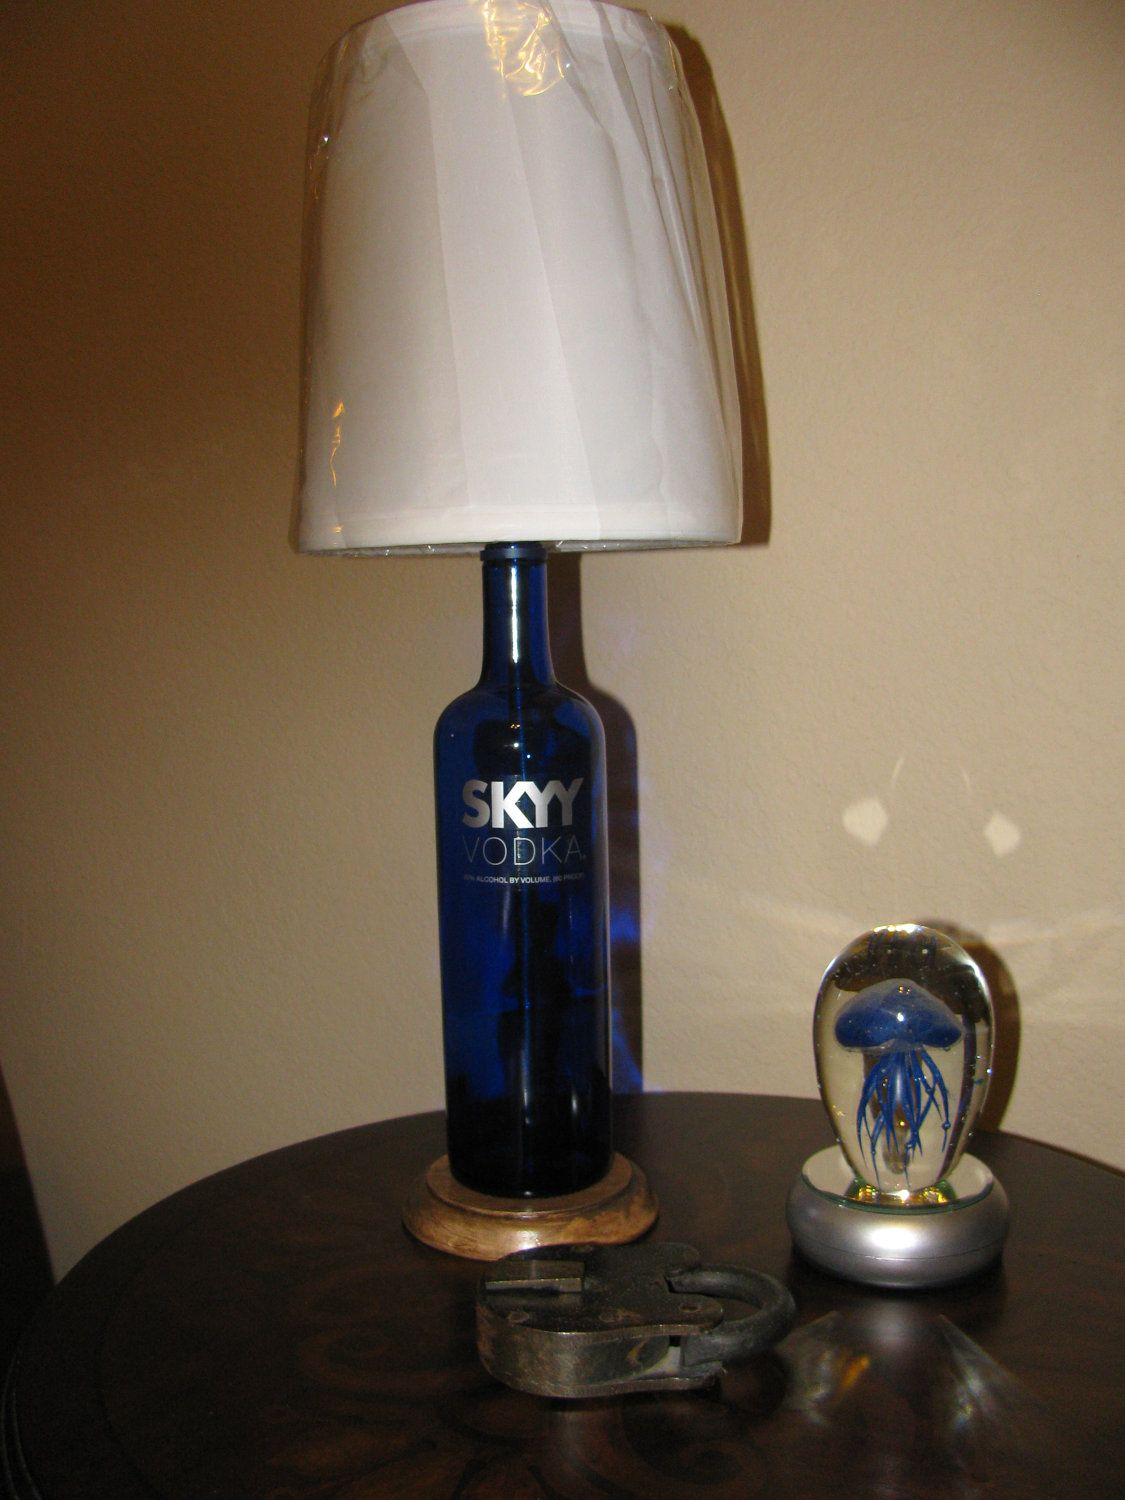 Table lamp harp sizes - Skyy Vodka Bottle Table Lamp With Harp Finial